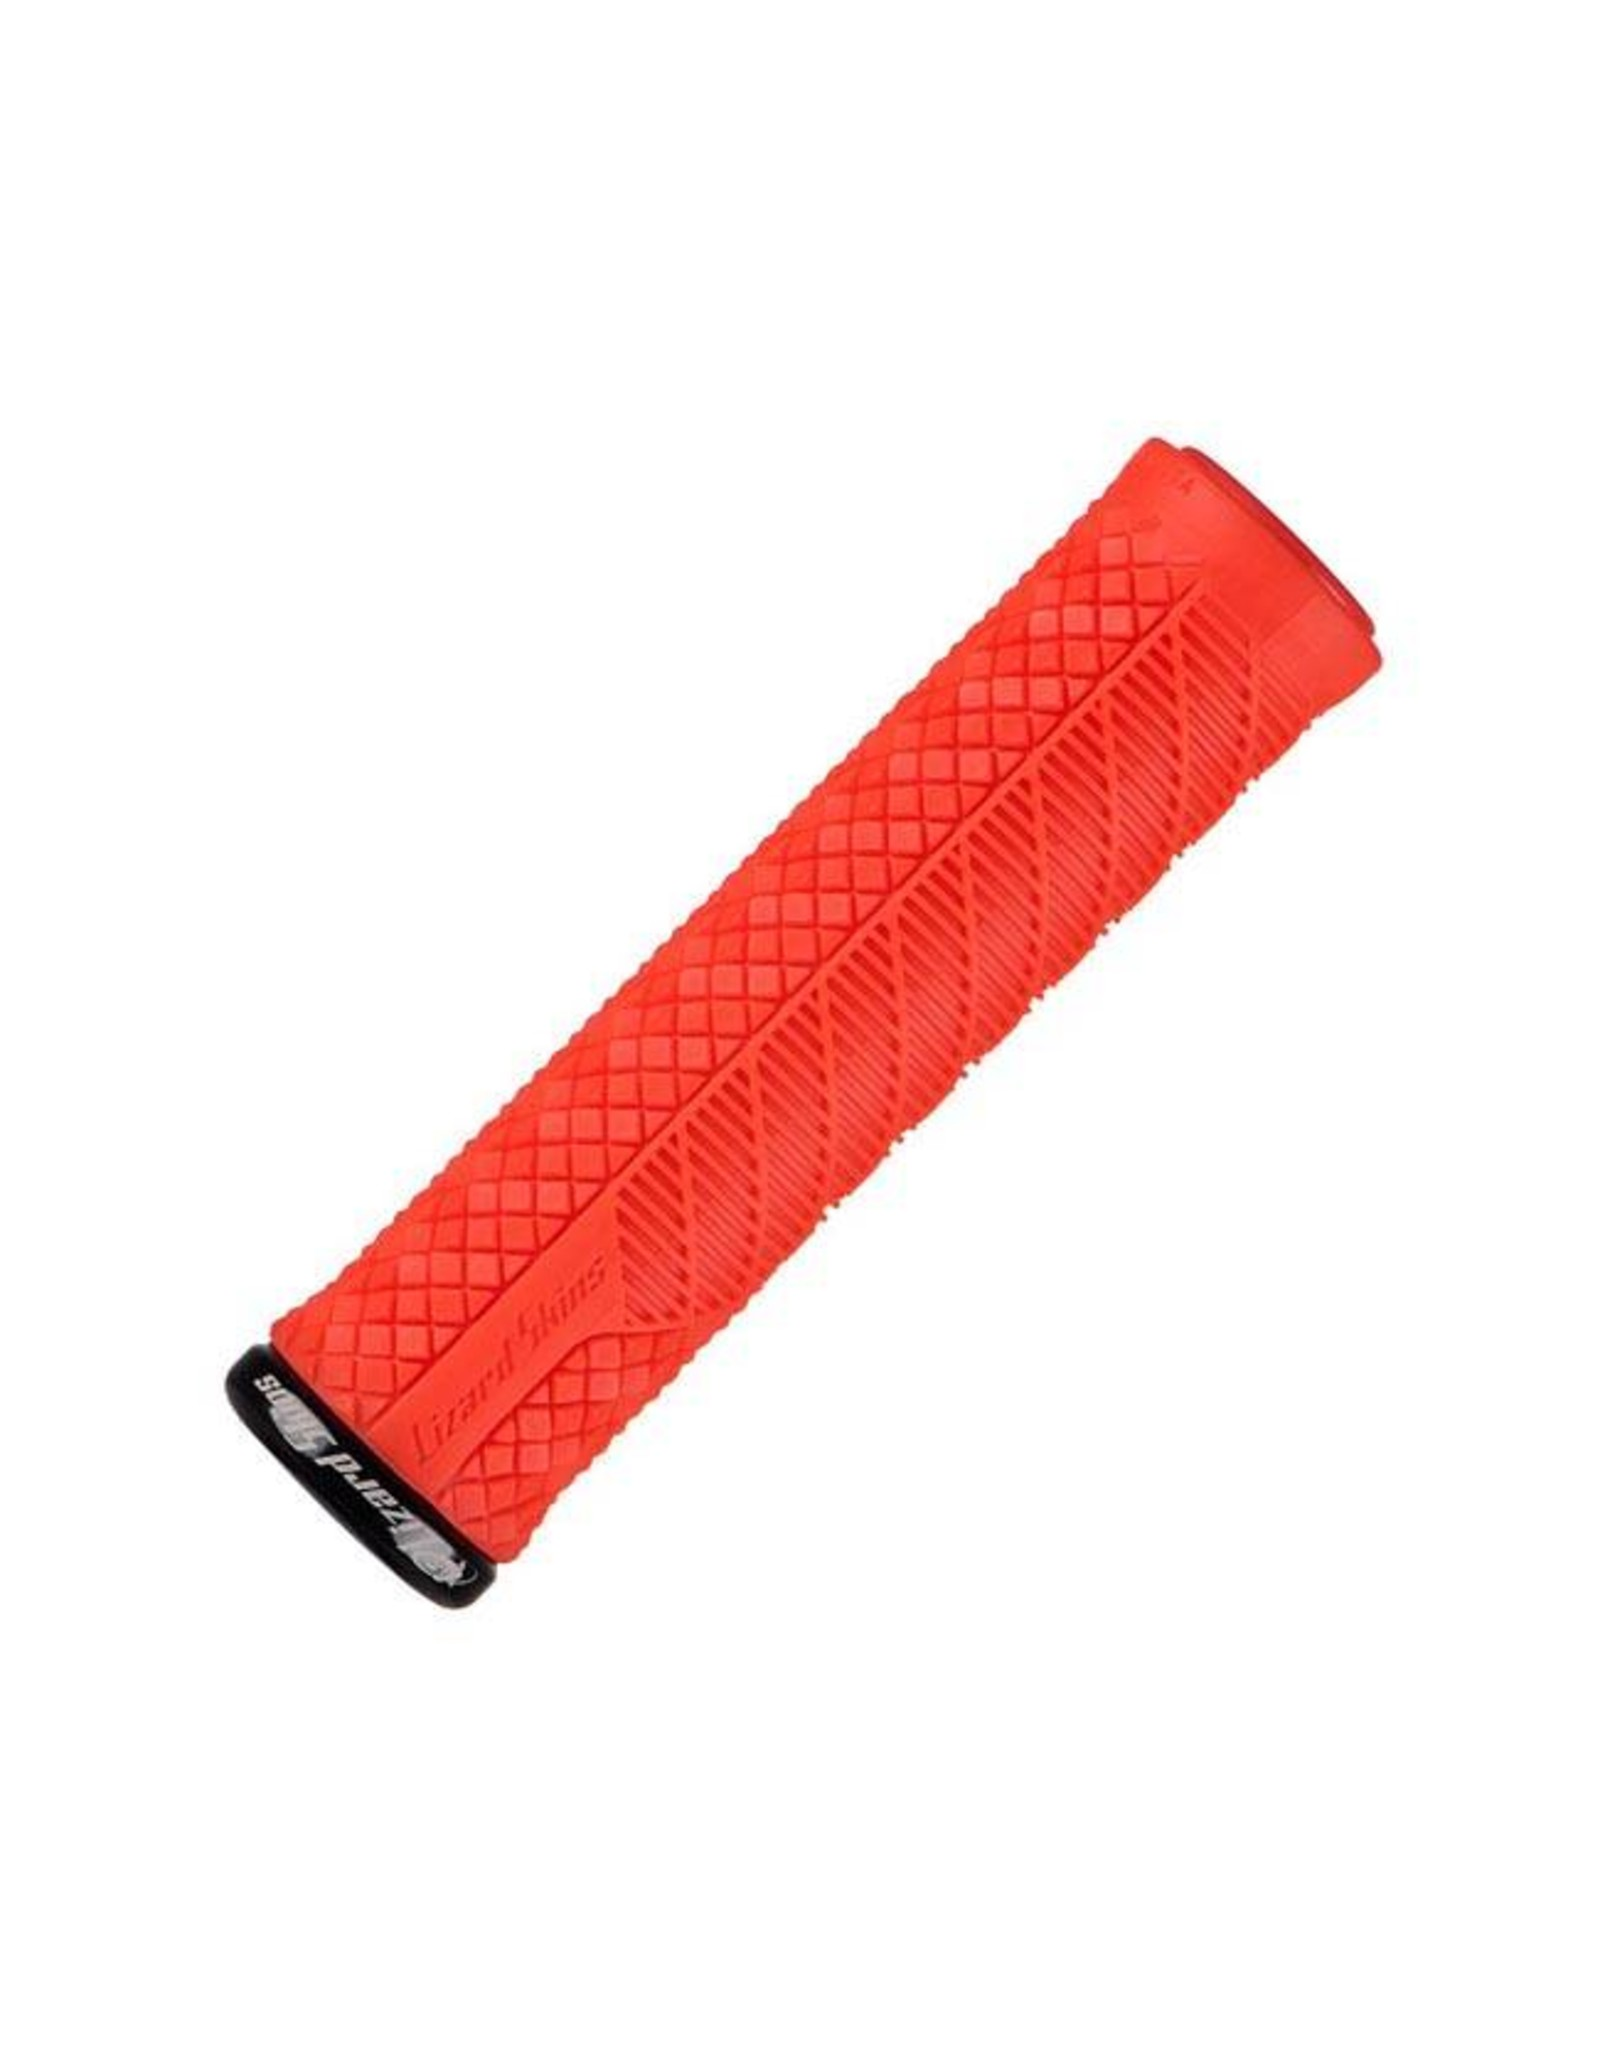 Lizard Skins Lizard Skins Charger Evo Lock On Grips Fire Red